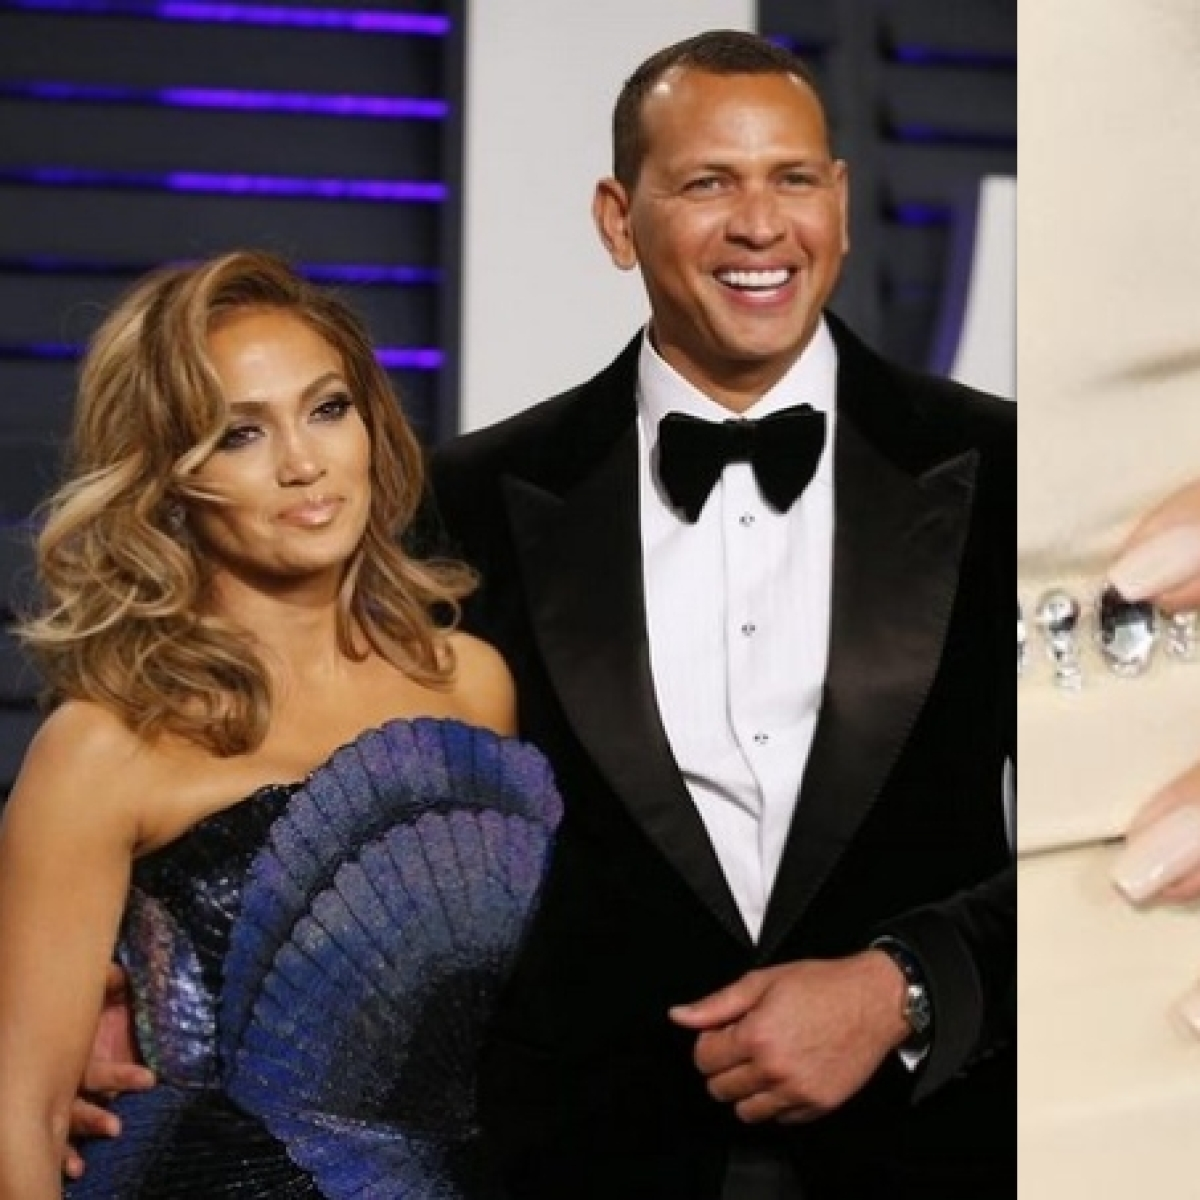 Jennifer Lopez still has Alex Rodriguez's Rs 7.4 crore engagement ring in her possession